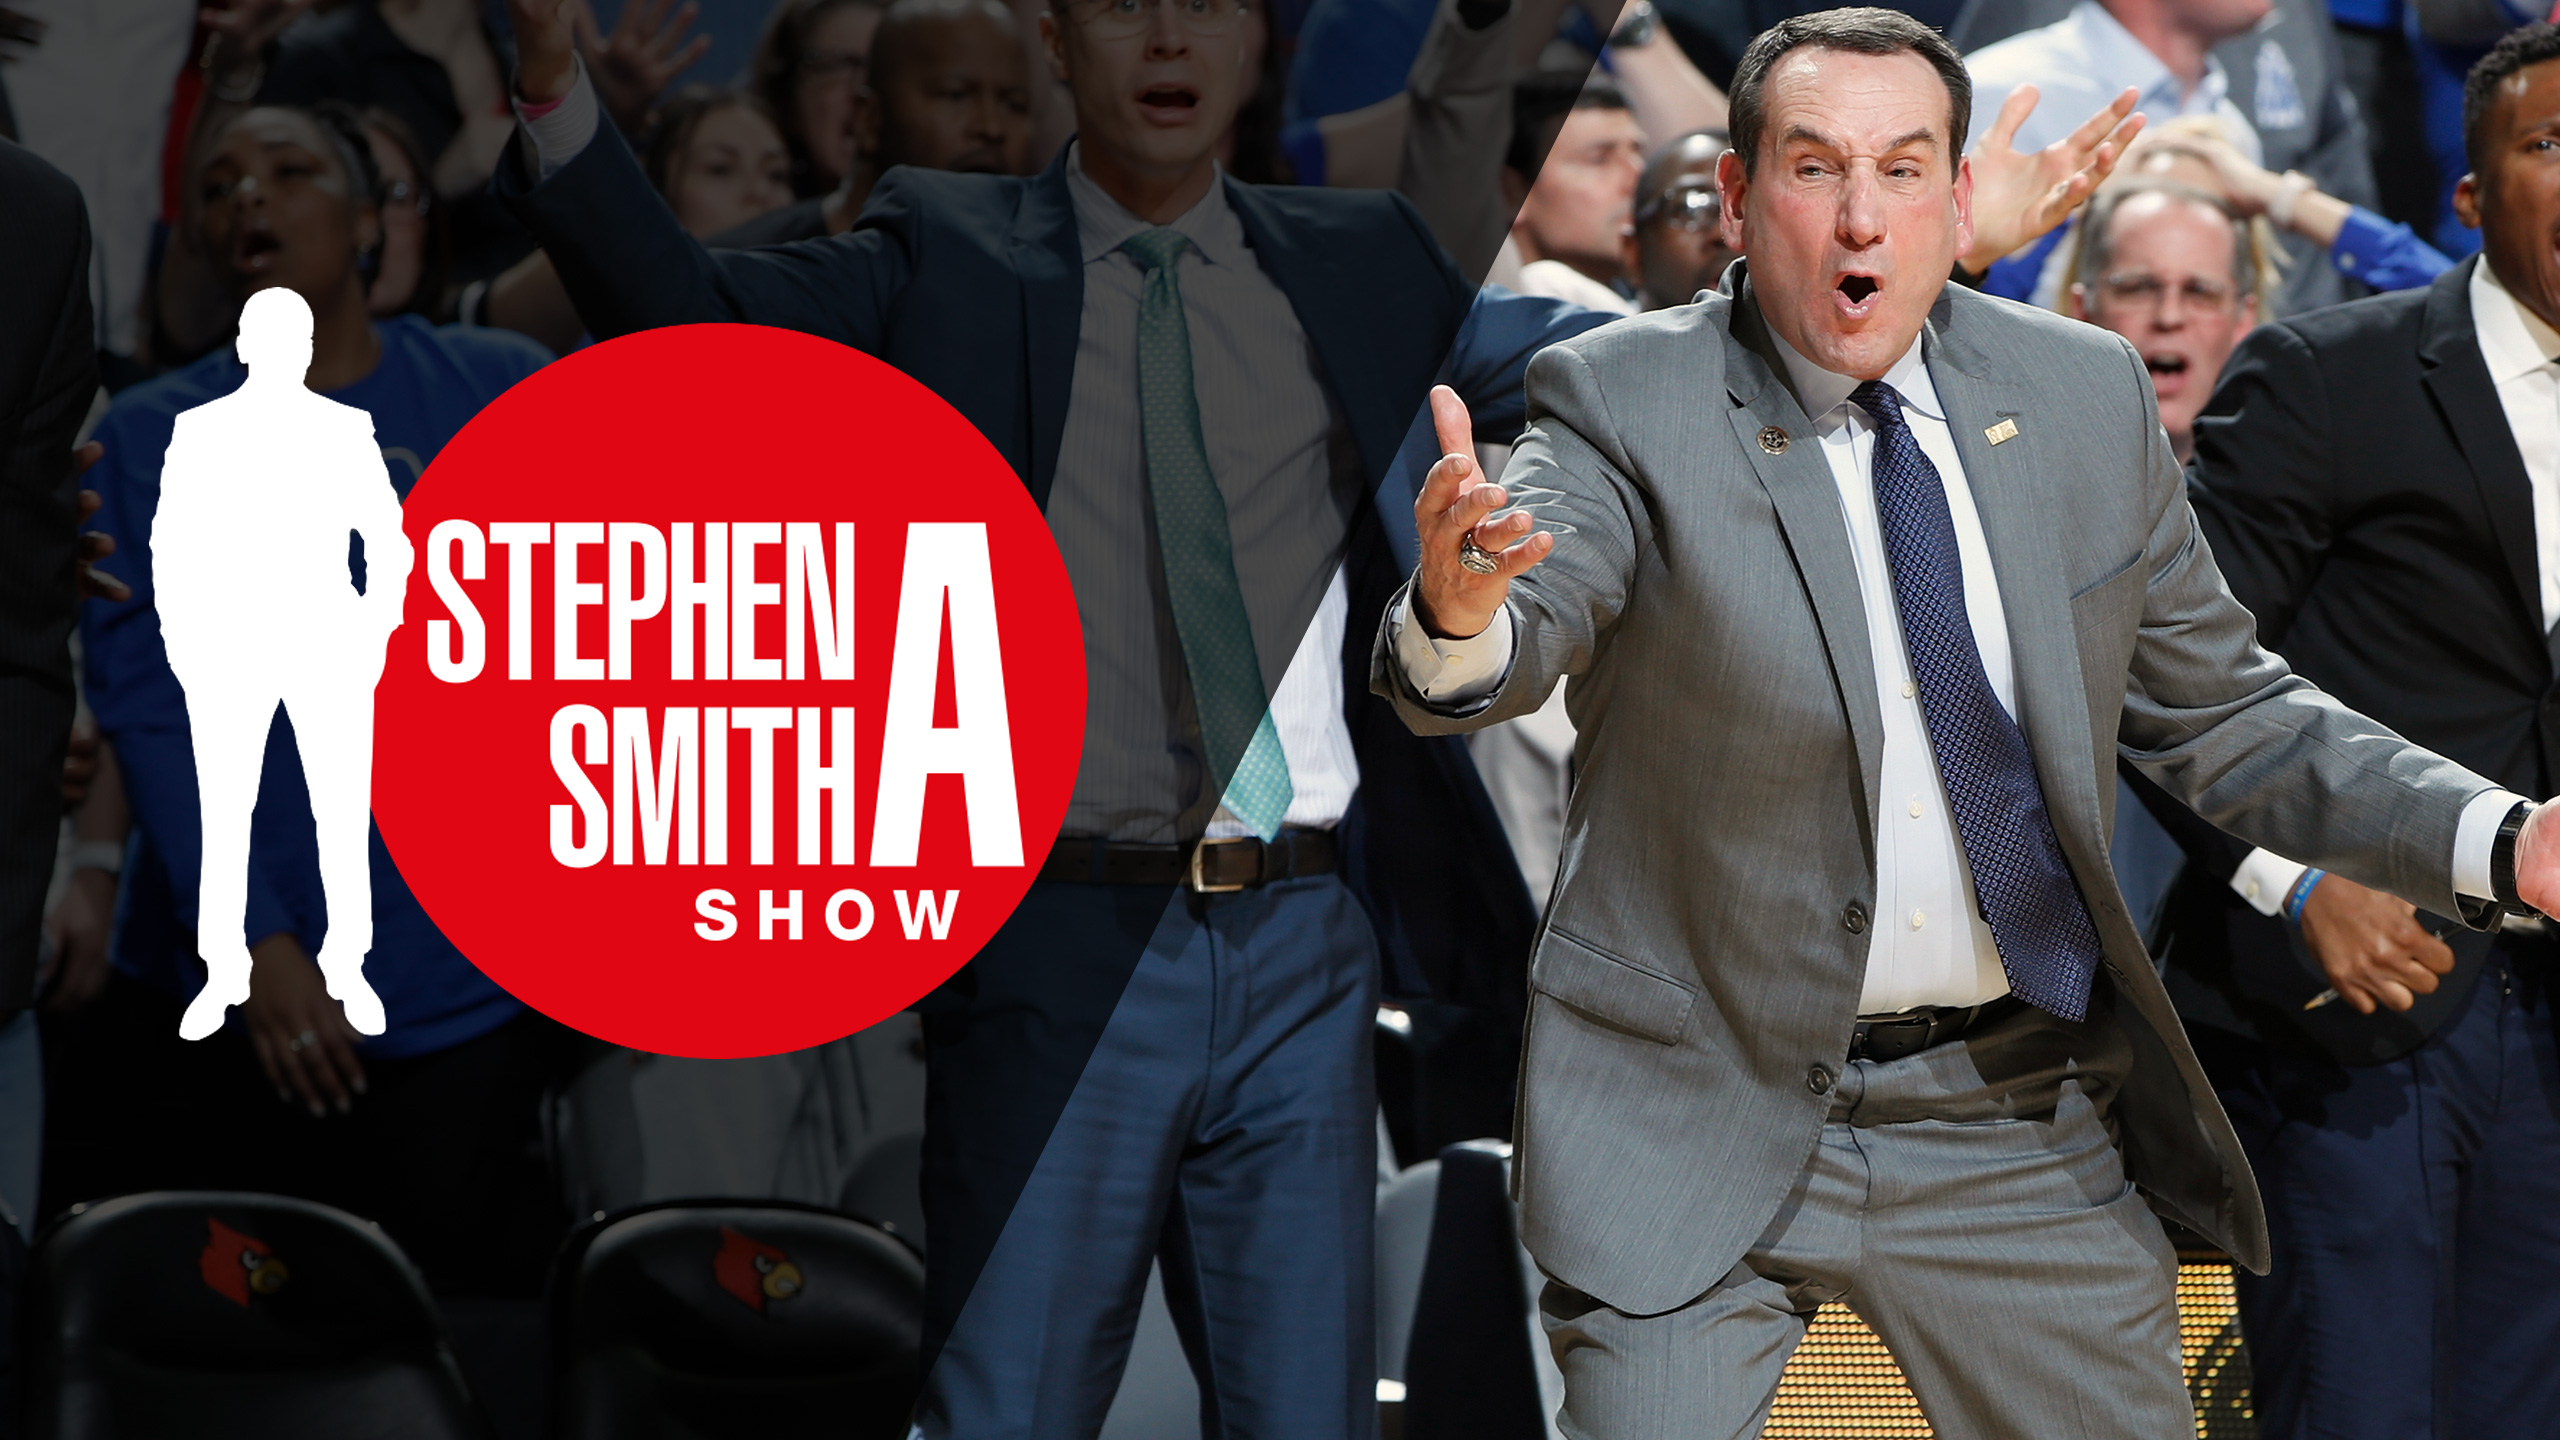 Wed, 2/13 - The Stephen A. Smith Show Presented by Progressive